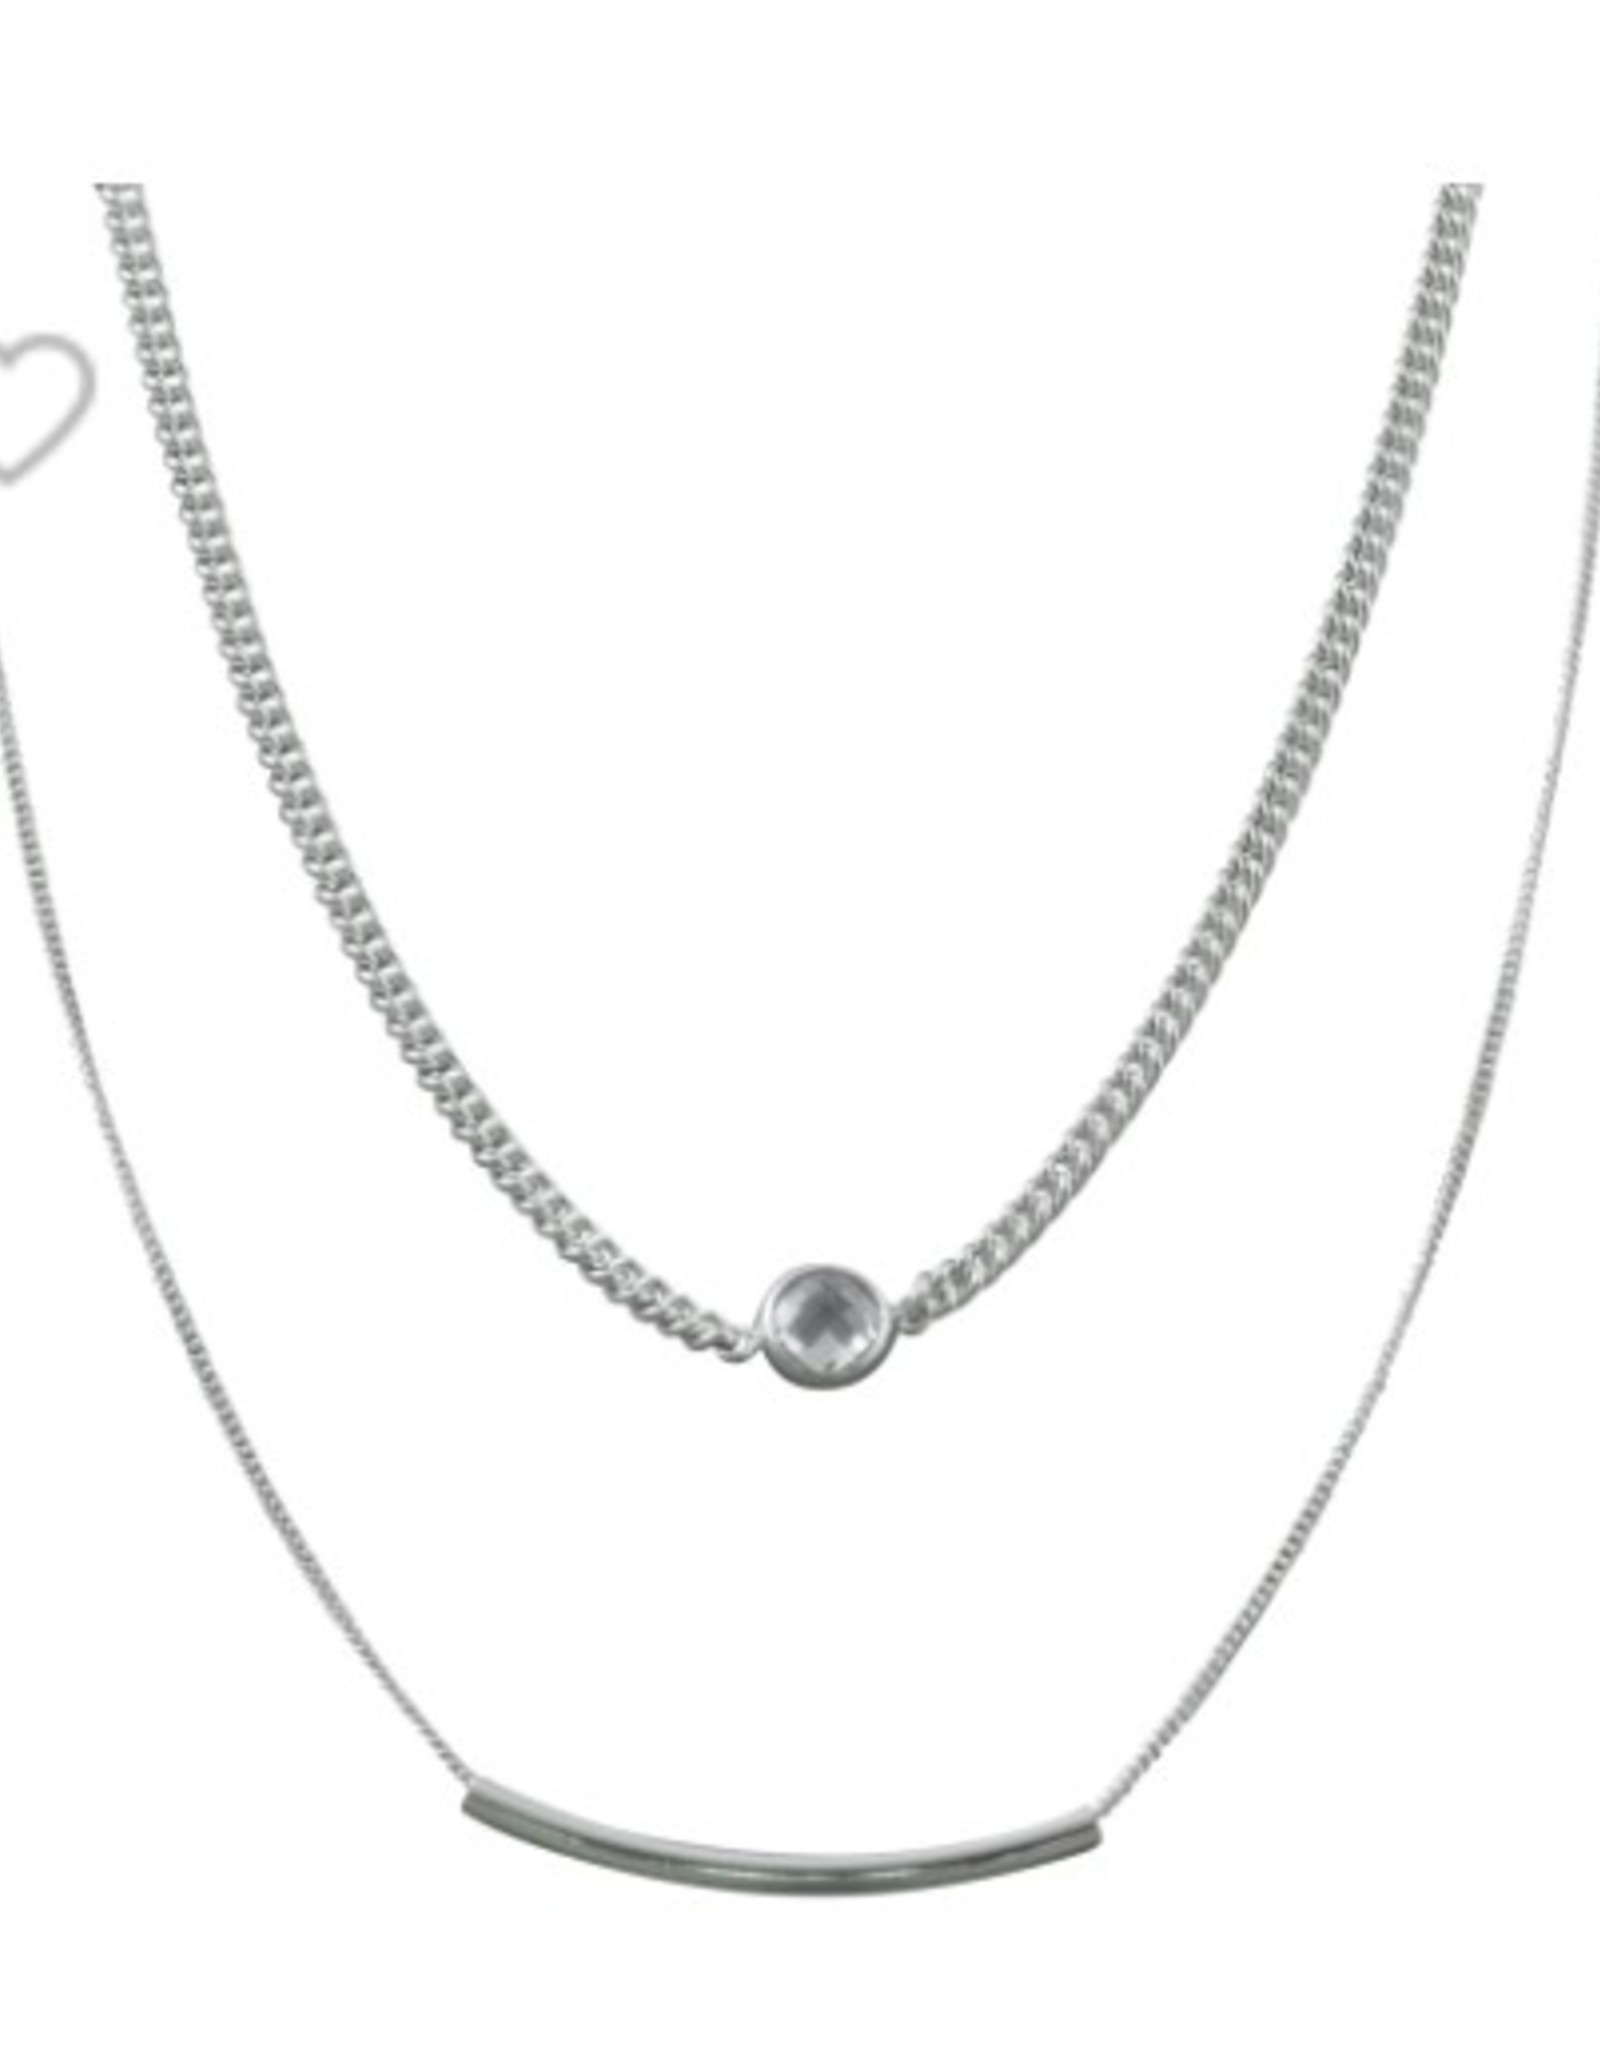 VON TRESKOW DOUBLE CHAIN CHOKER NECKLACE WITH CUBIC ZIRCONIA & BAR